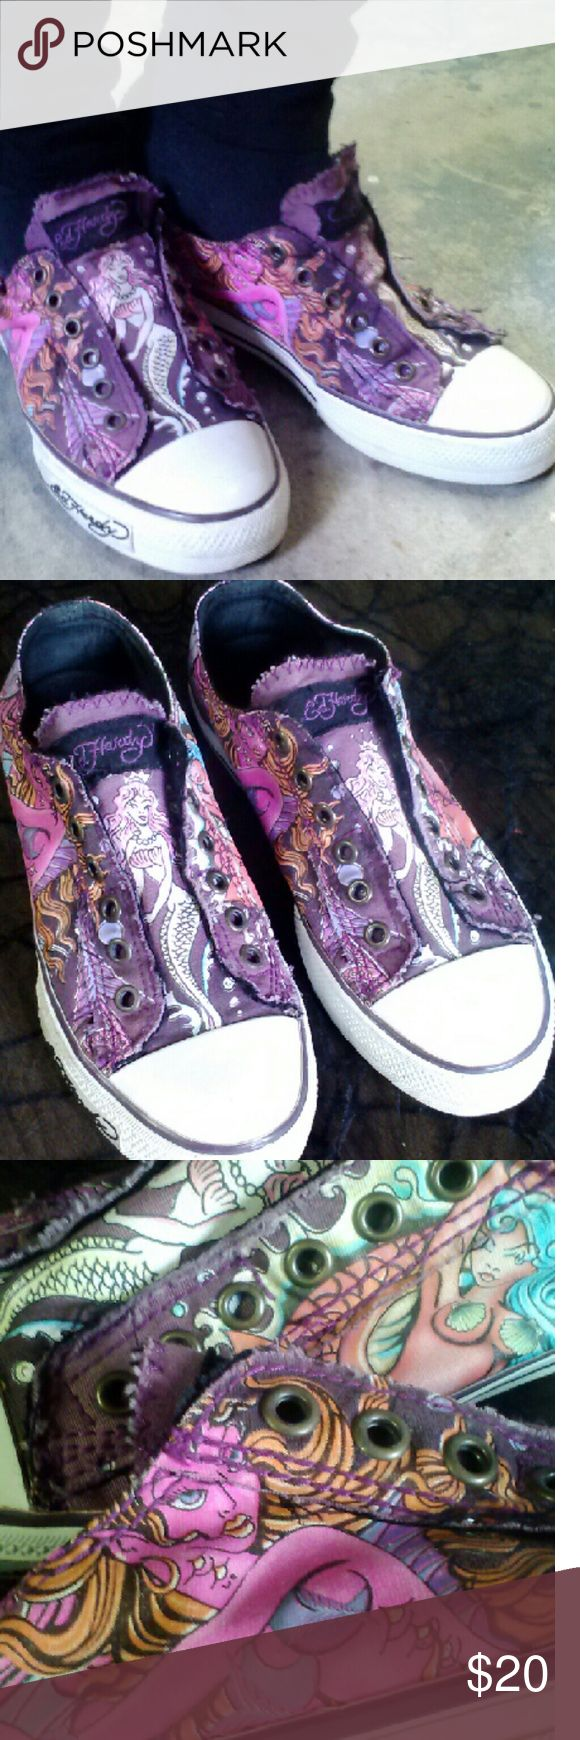 Sweet Kicks Beautiful tones of pink and purple color these sexy af mermaids. Converse style slip ons sneakers by the famed Ed Hardy.  Only worn once or twice. Like new. Ed Hardy Shoes Sneakers